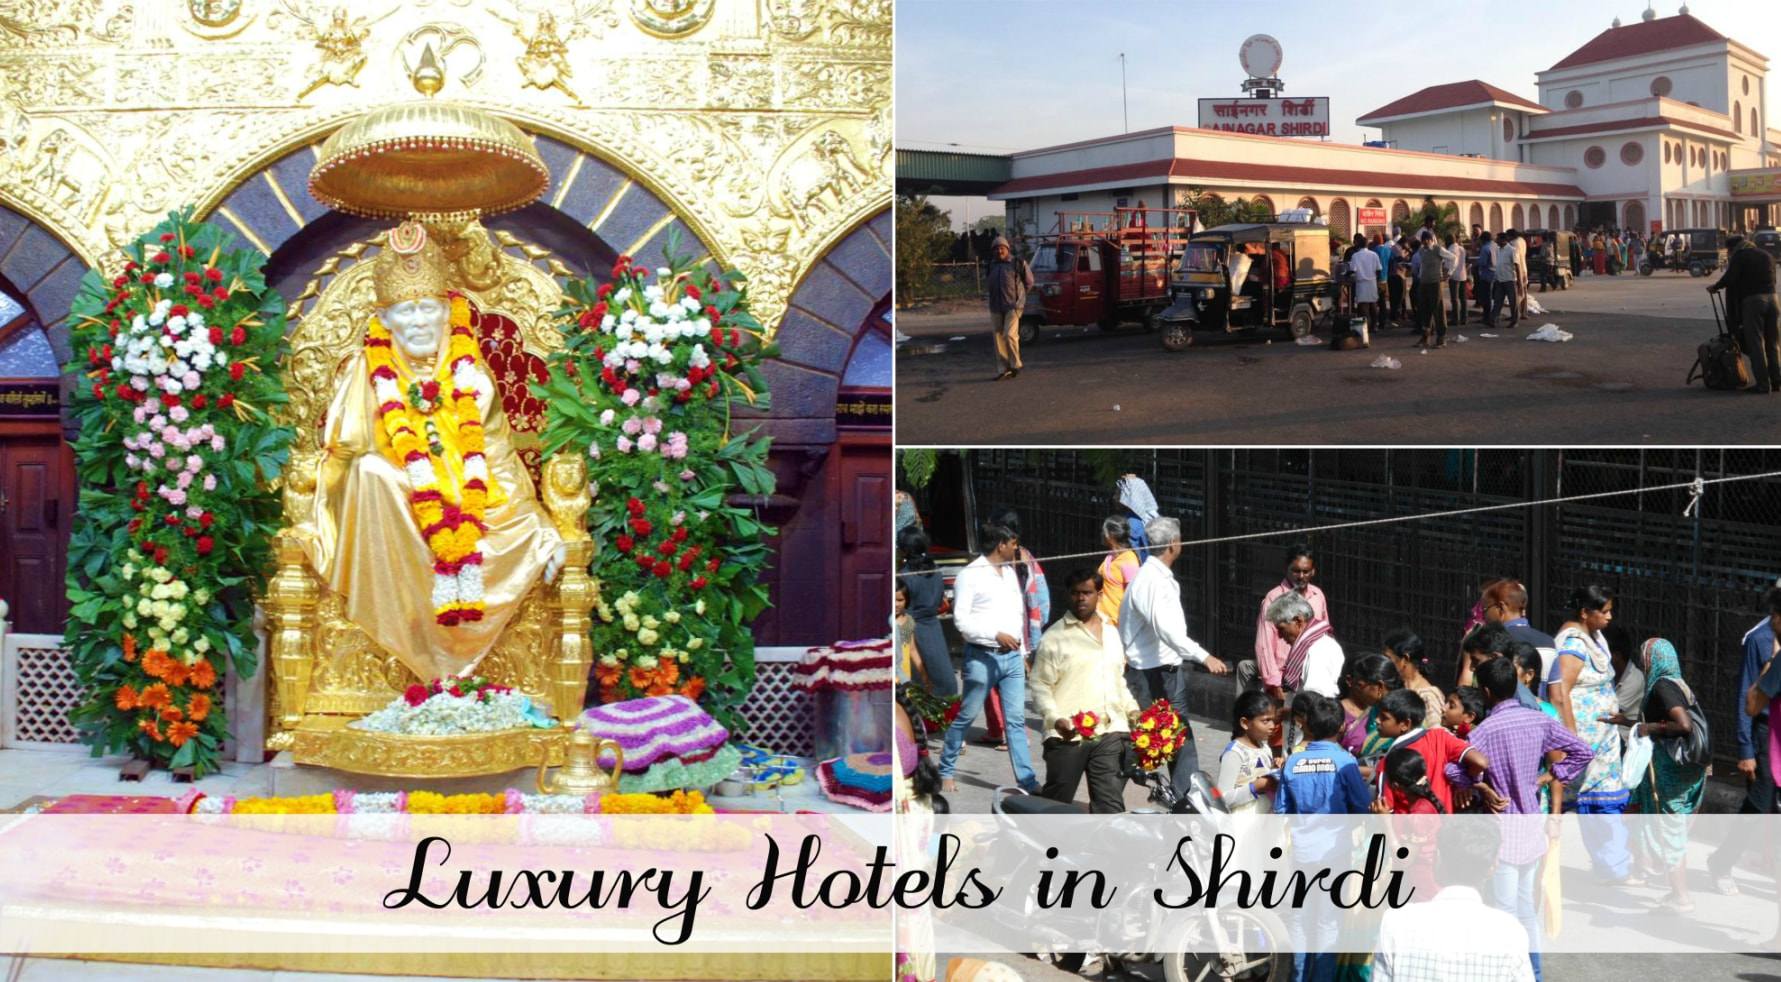 Shirdi Hotels.